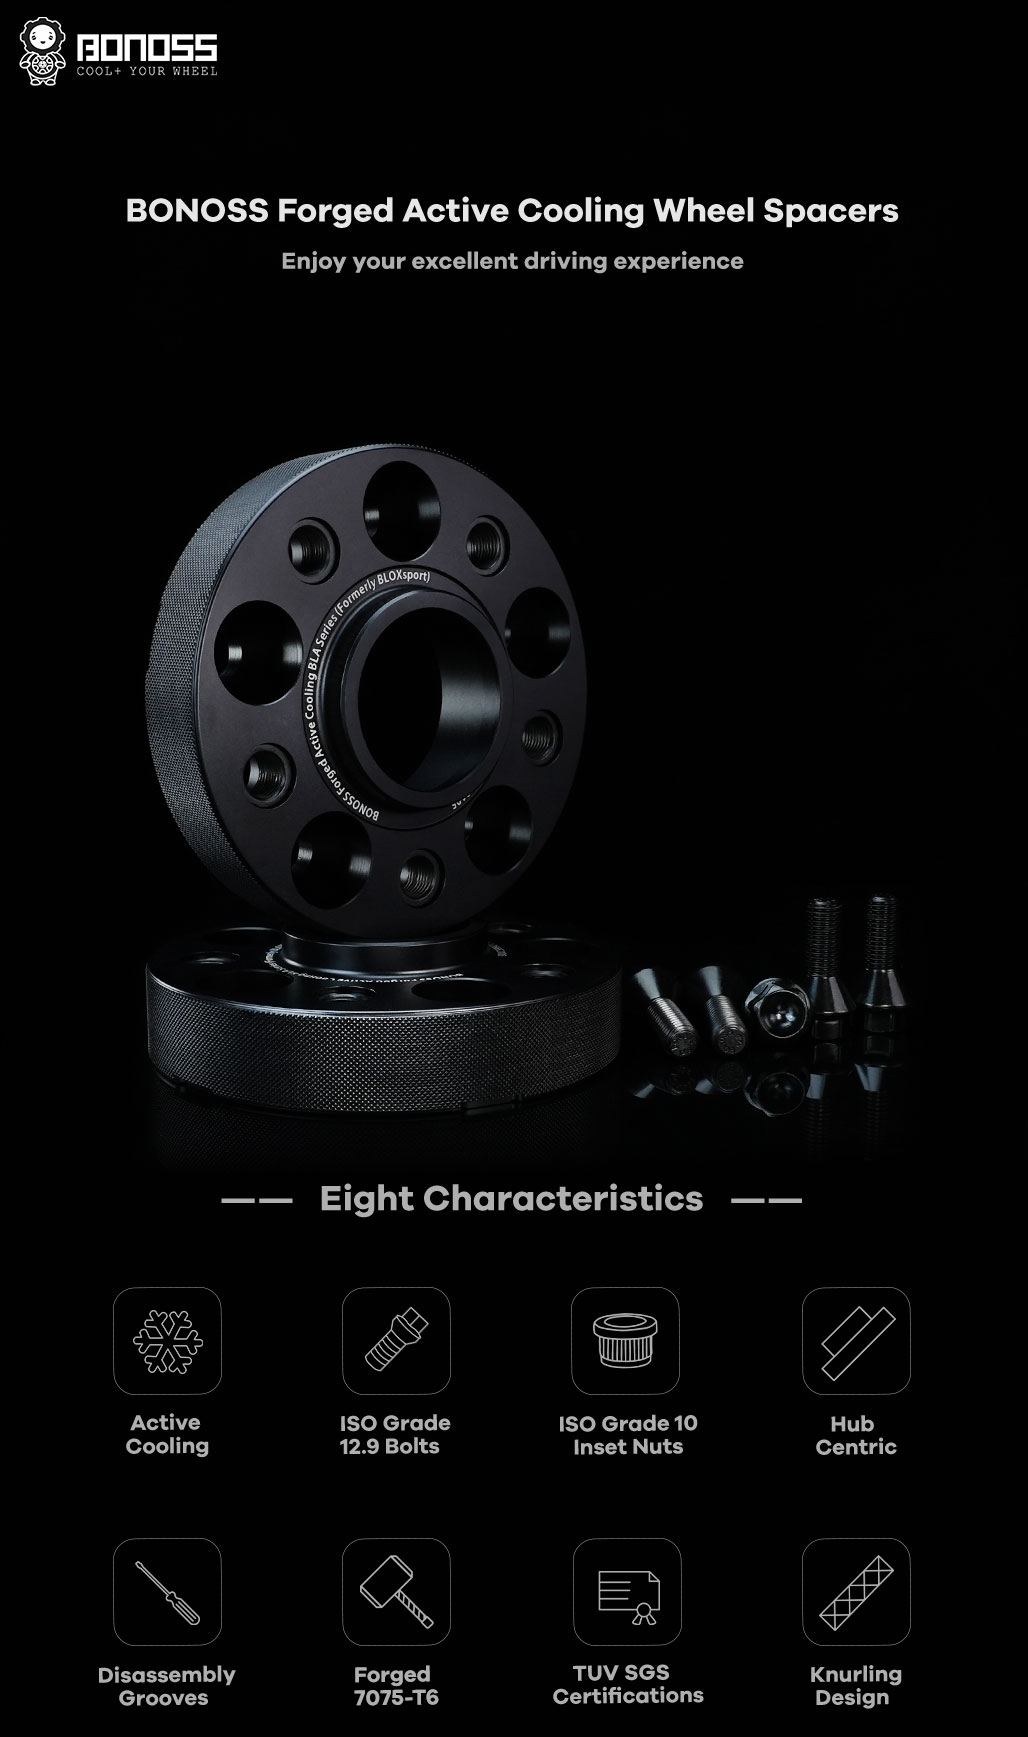 BONOSS-forged-lightweight-plus-wheel-spacer-for-Mercedes-Benz-W168-5x112-66.5-12x1.5-7075t6-by-grace-1